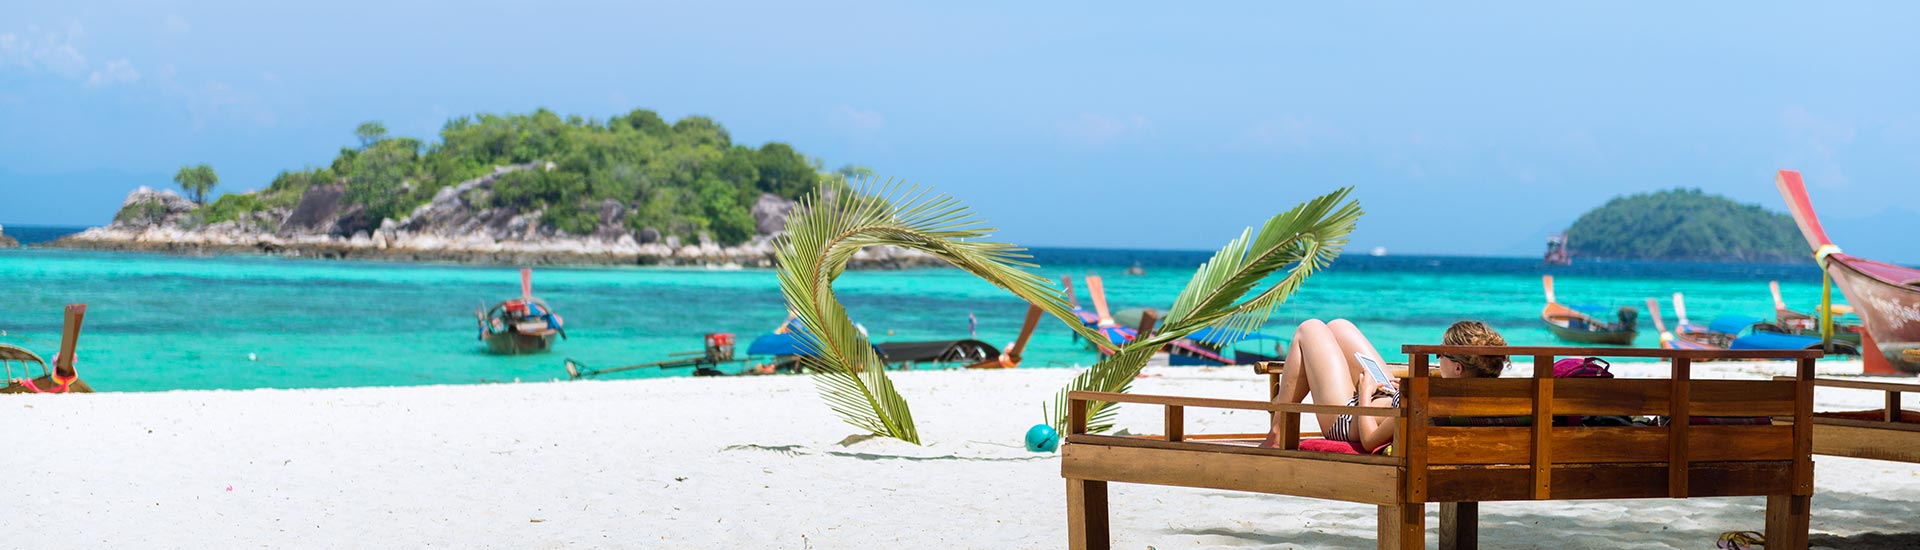 Koh Lipe Beach in Thailand